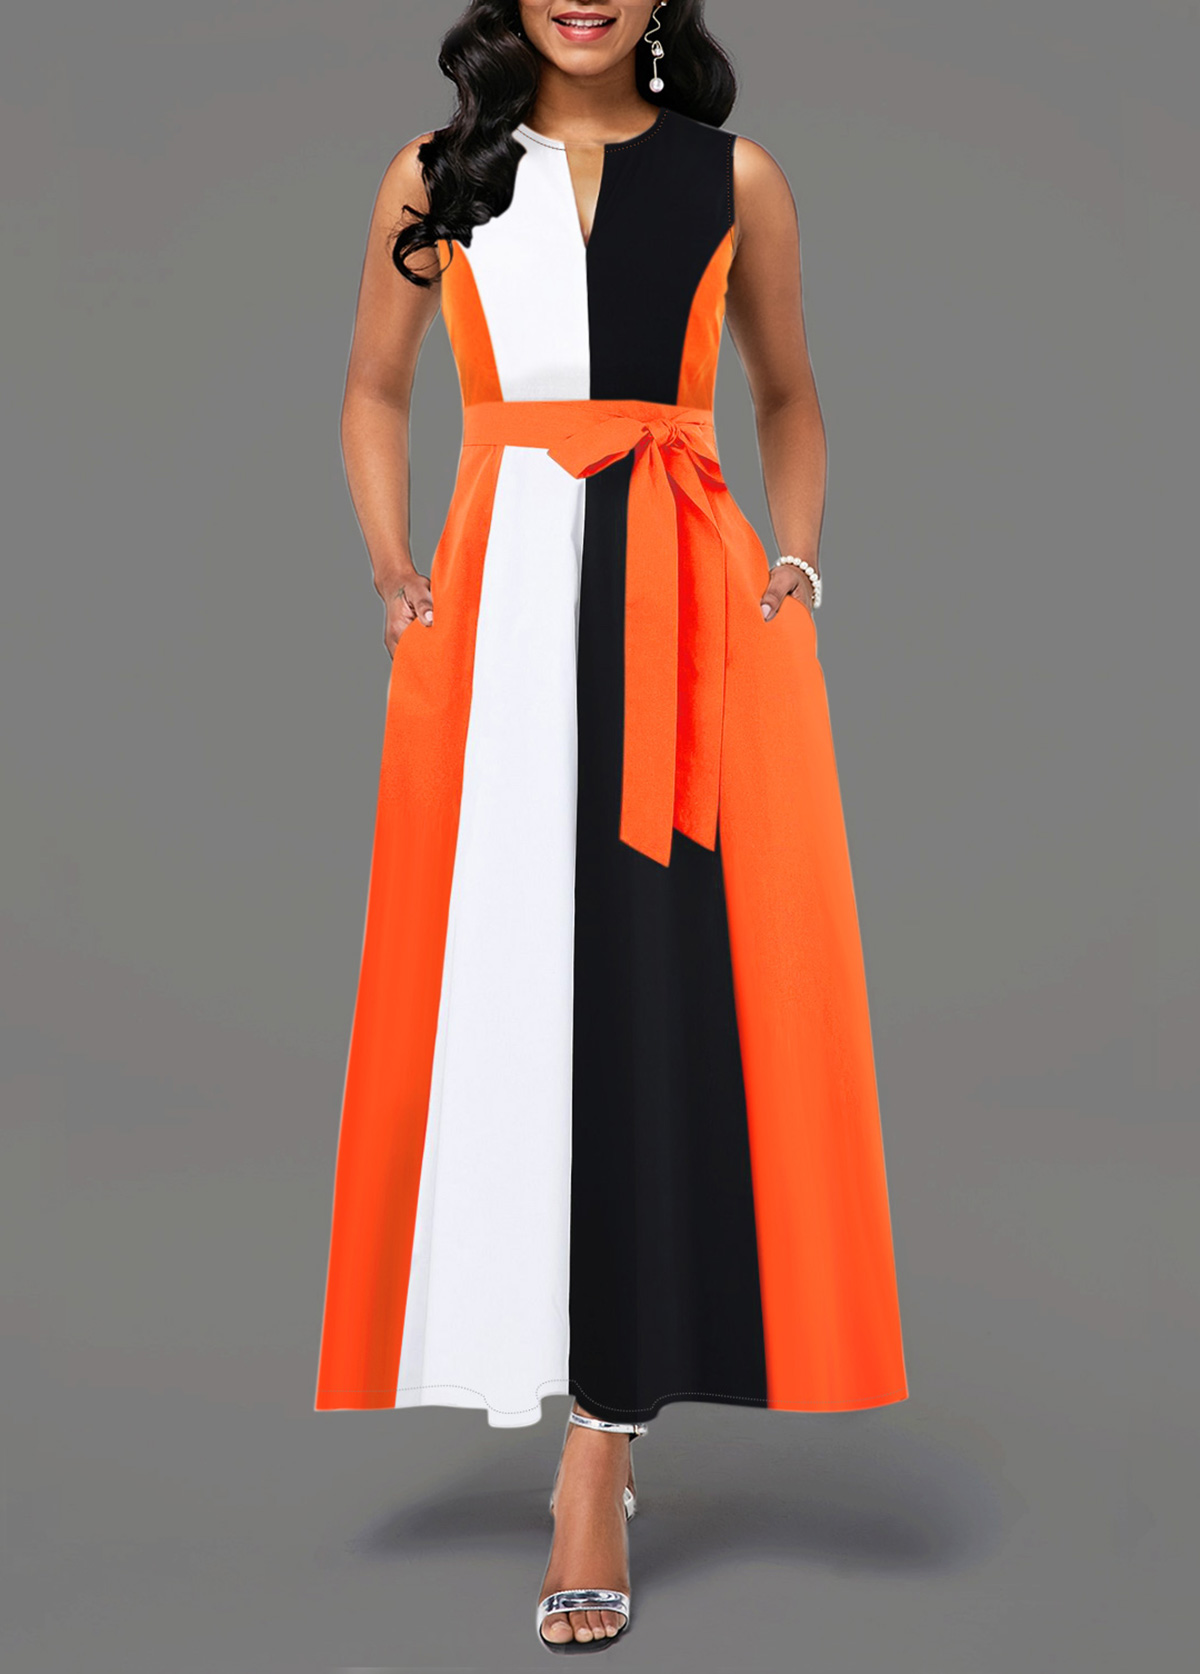 Sleeveless Split Neck Color Block Dress